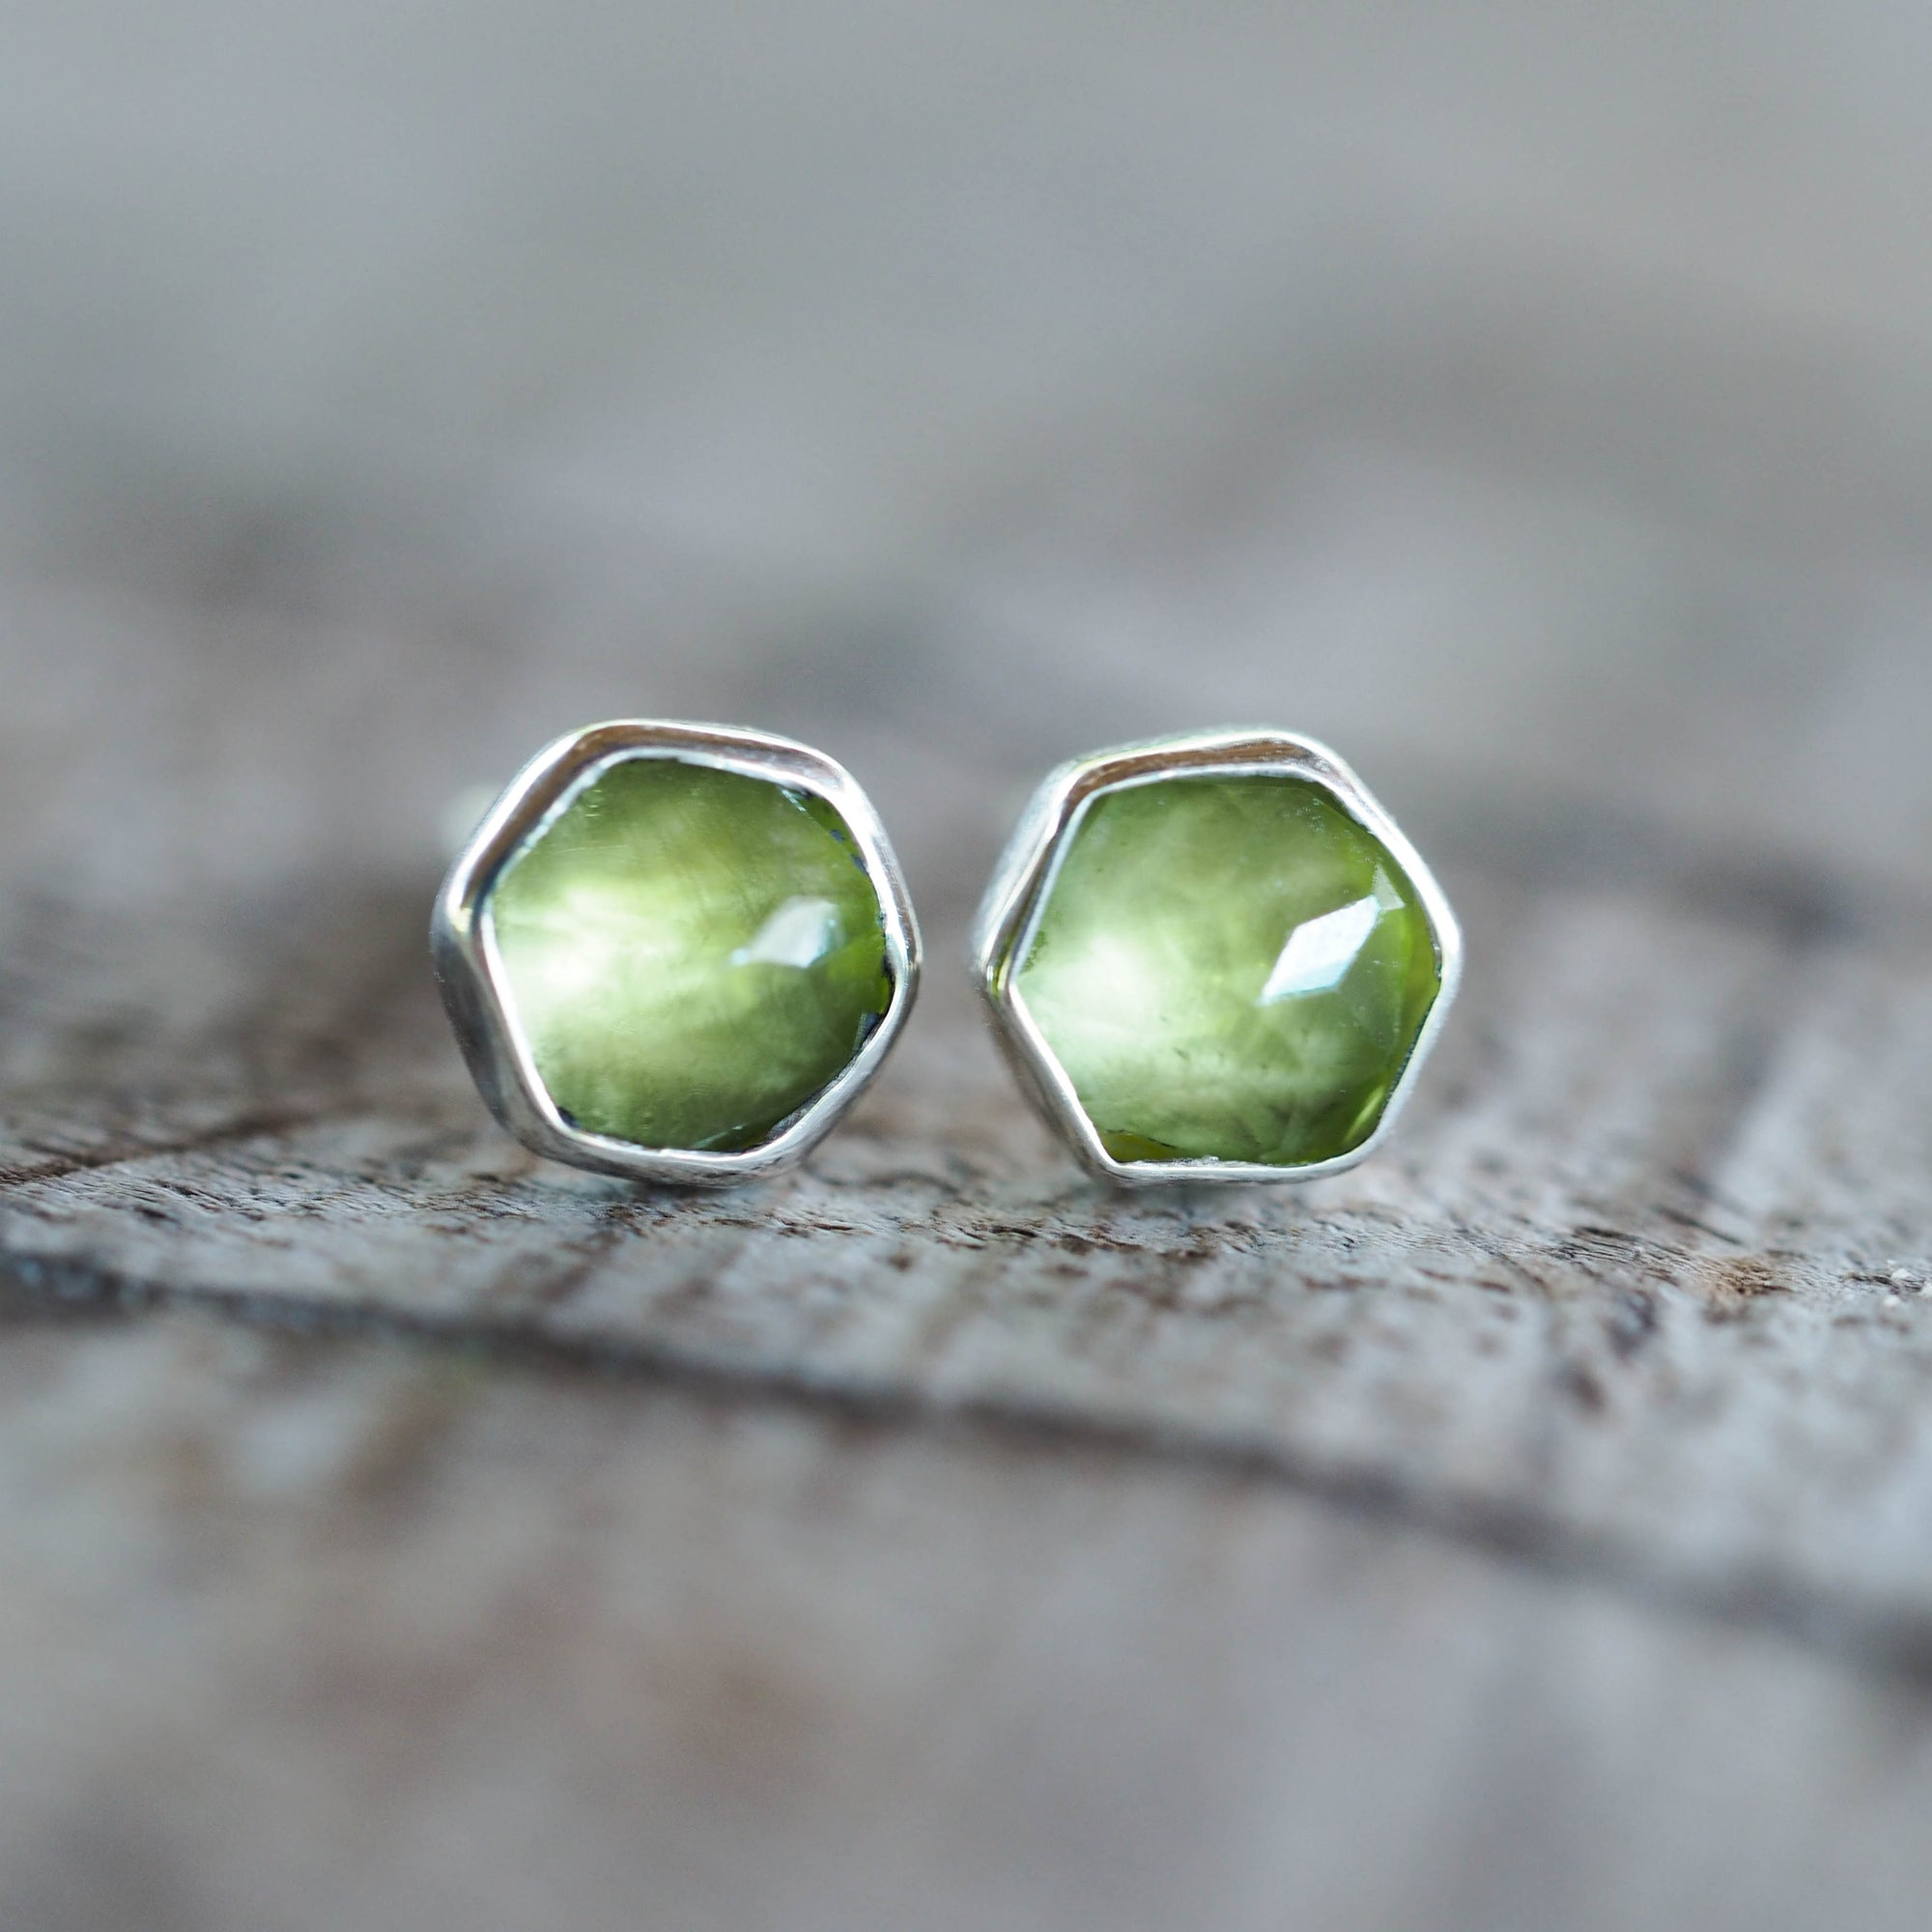 Hexagon Peridot Earrings - Gardens of the Sun Jewelry